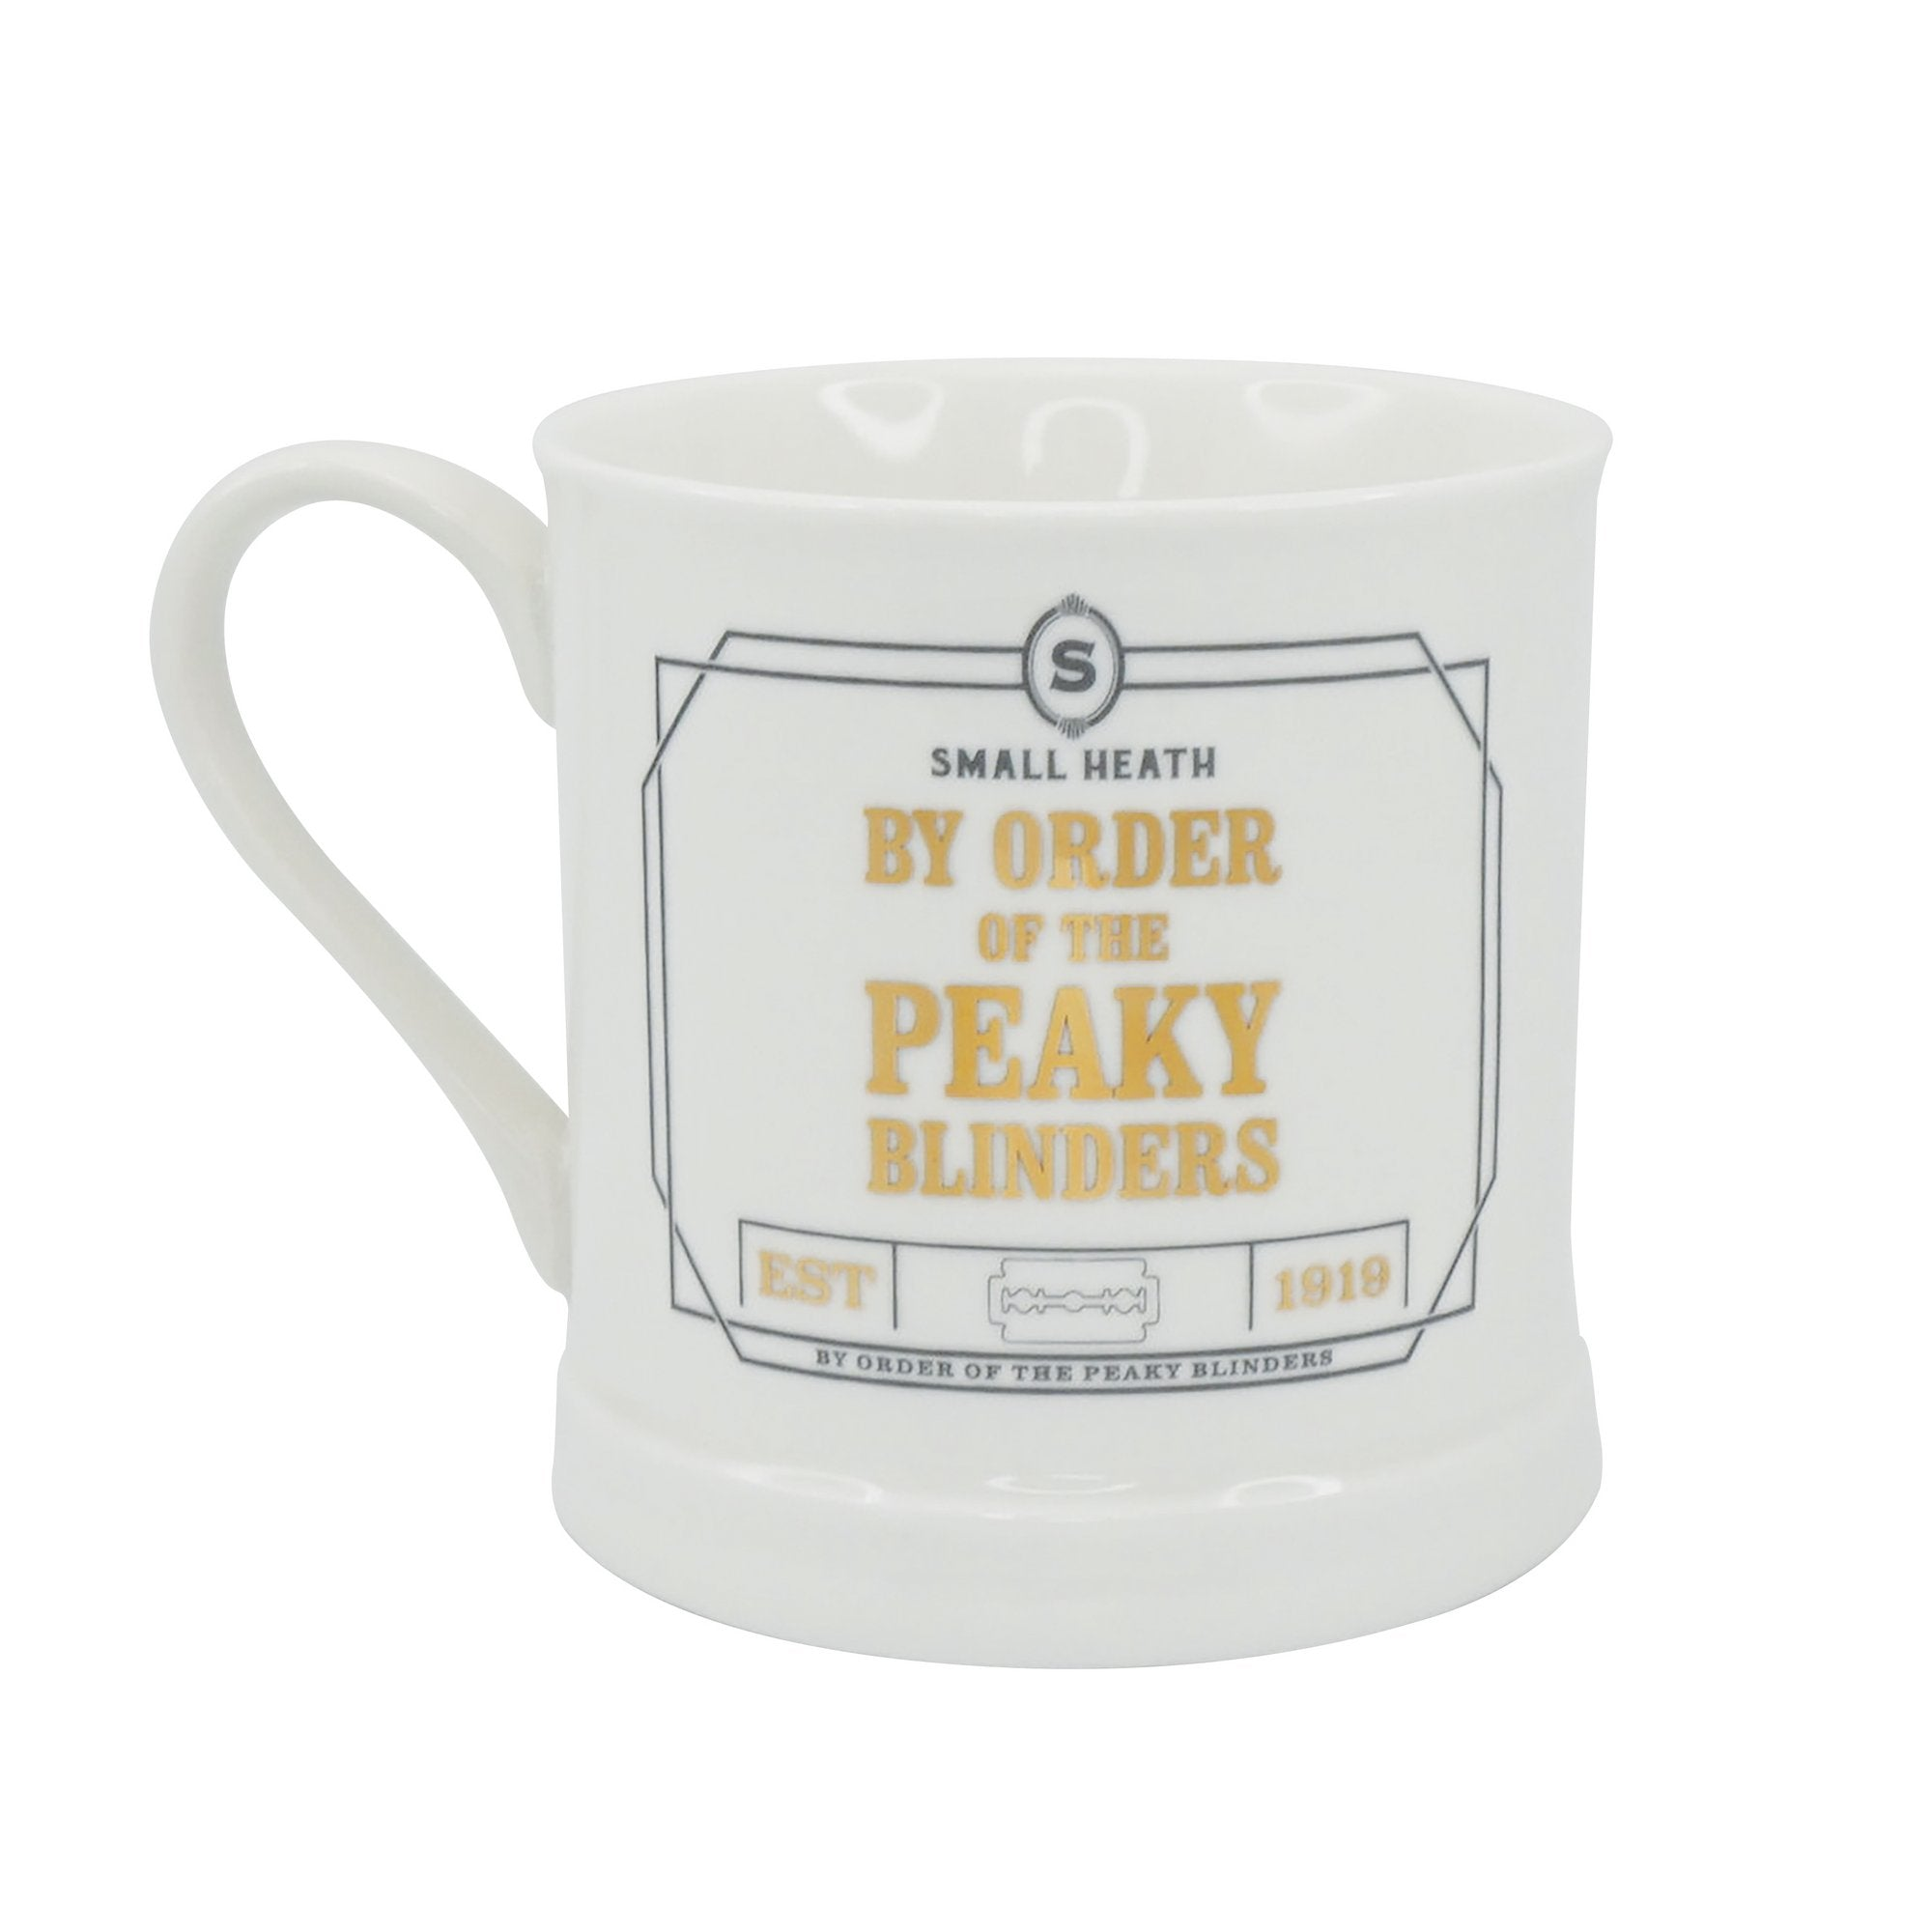 Peaky Blinder Vintage Mug - I'm a Man Who Drinks Tea